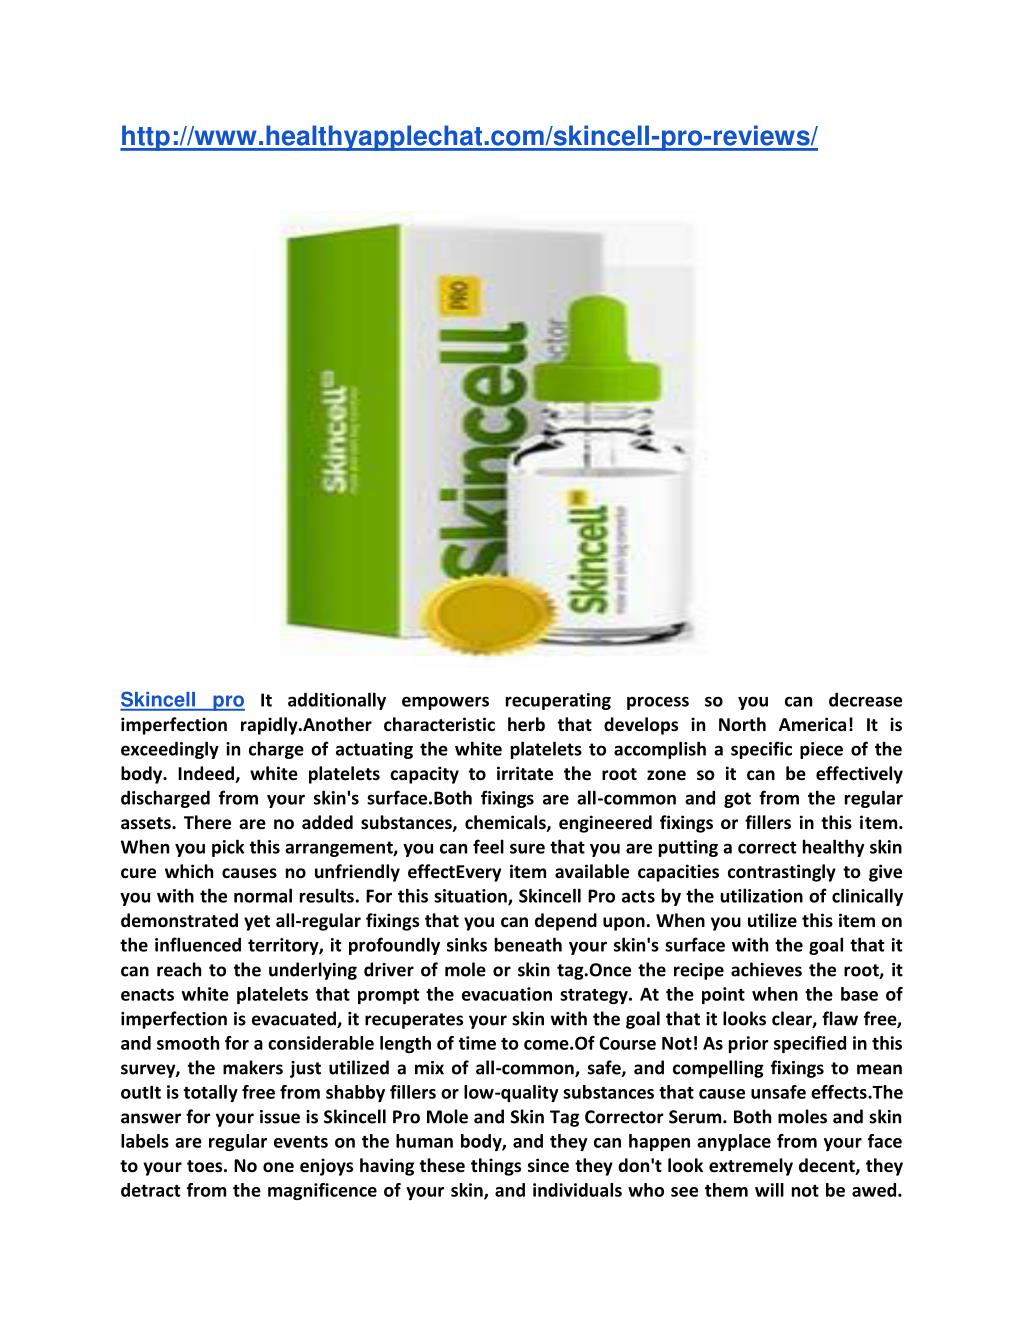 PPT - http://www.healthyapplechat.com/skincell-pro-reviews..